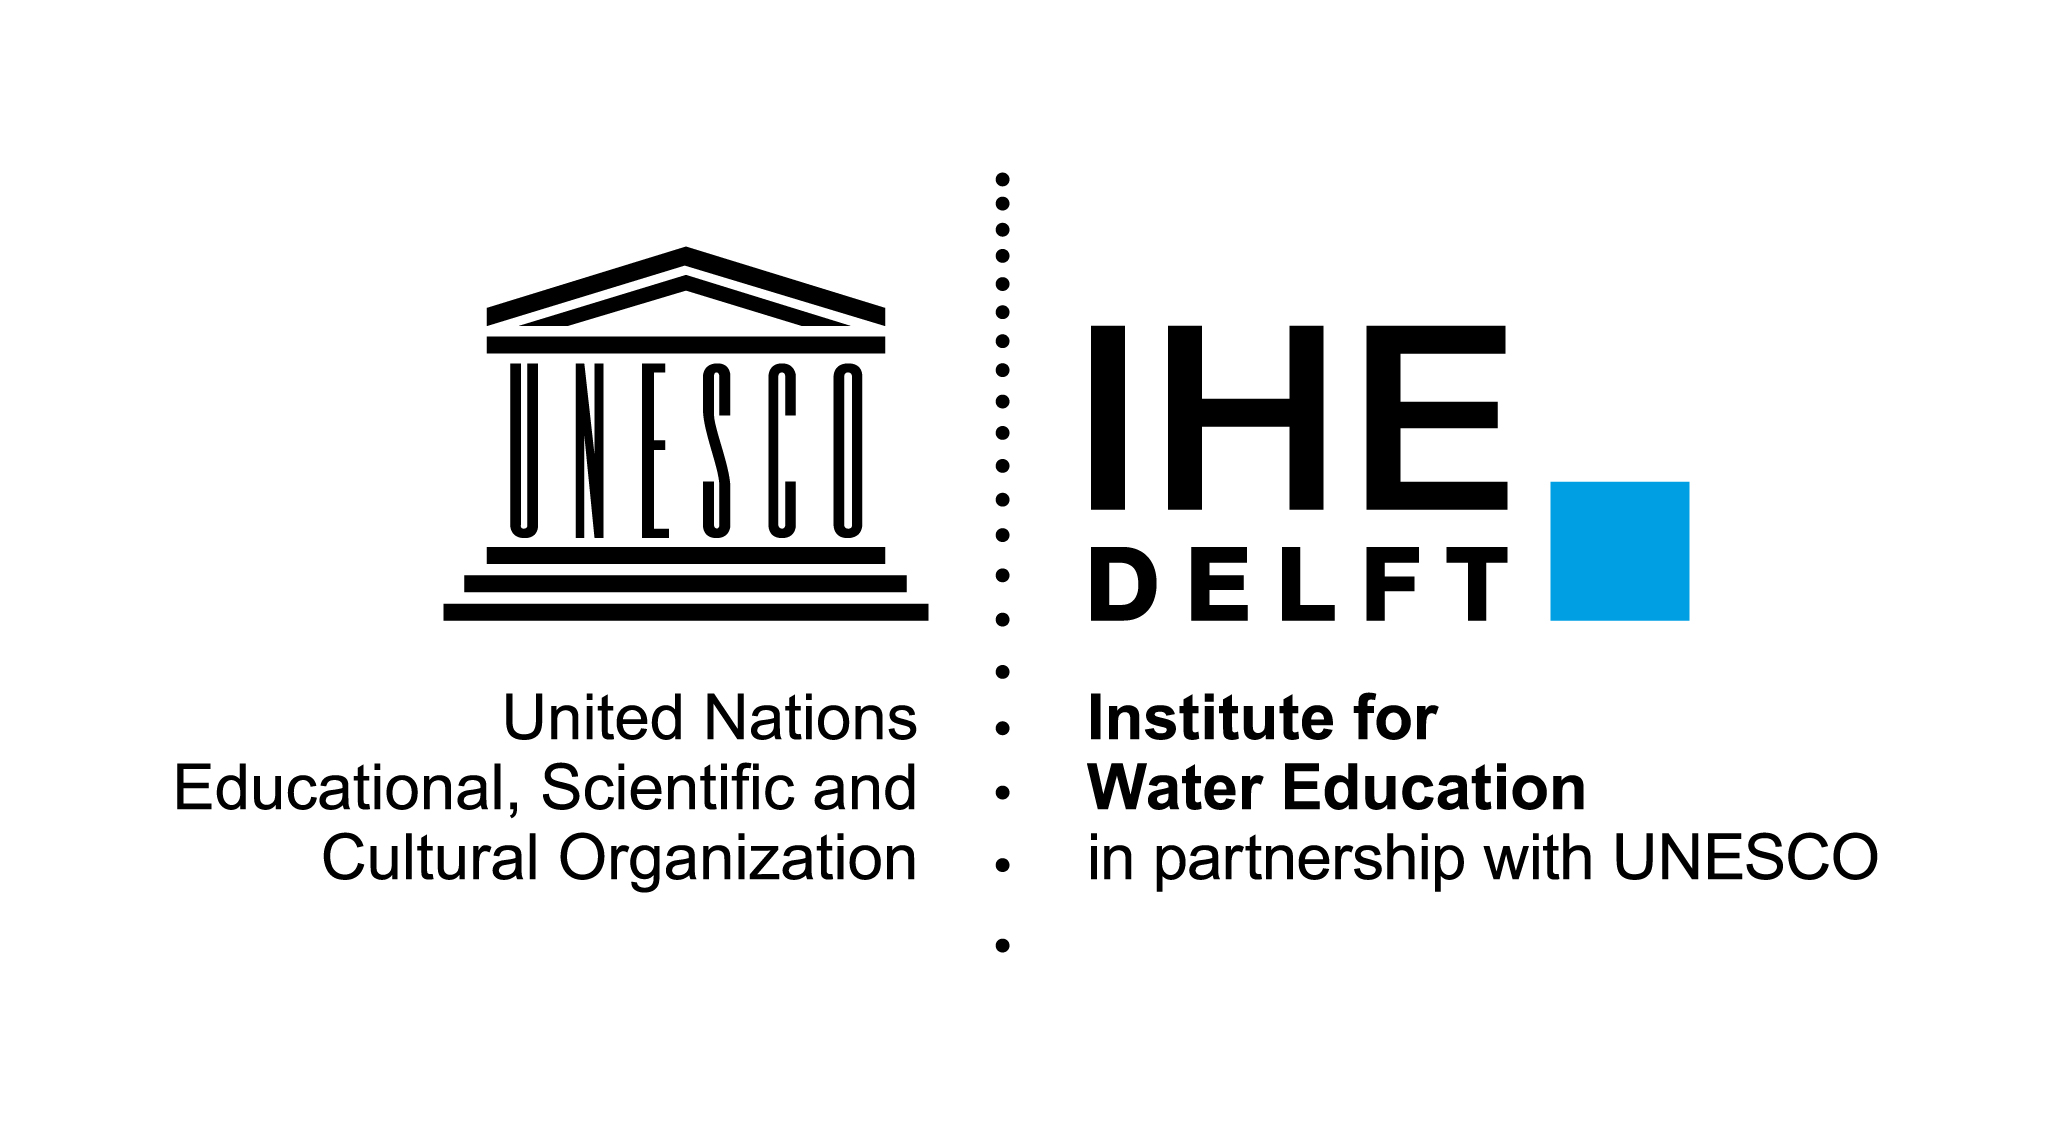 IHE-Delft_LOGO_BLACK_CYAN_full_version